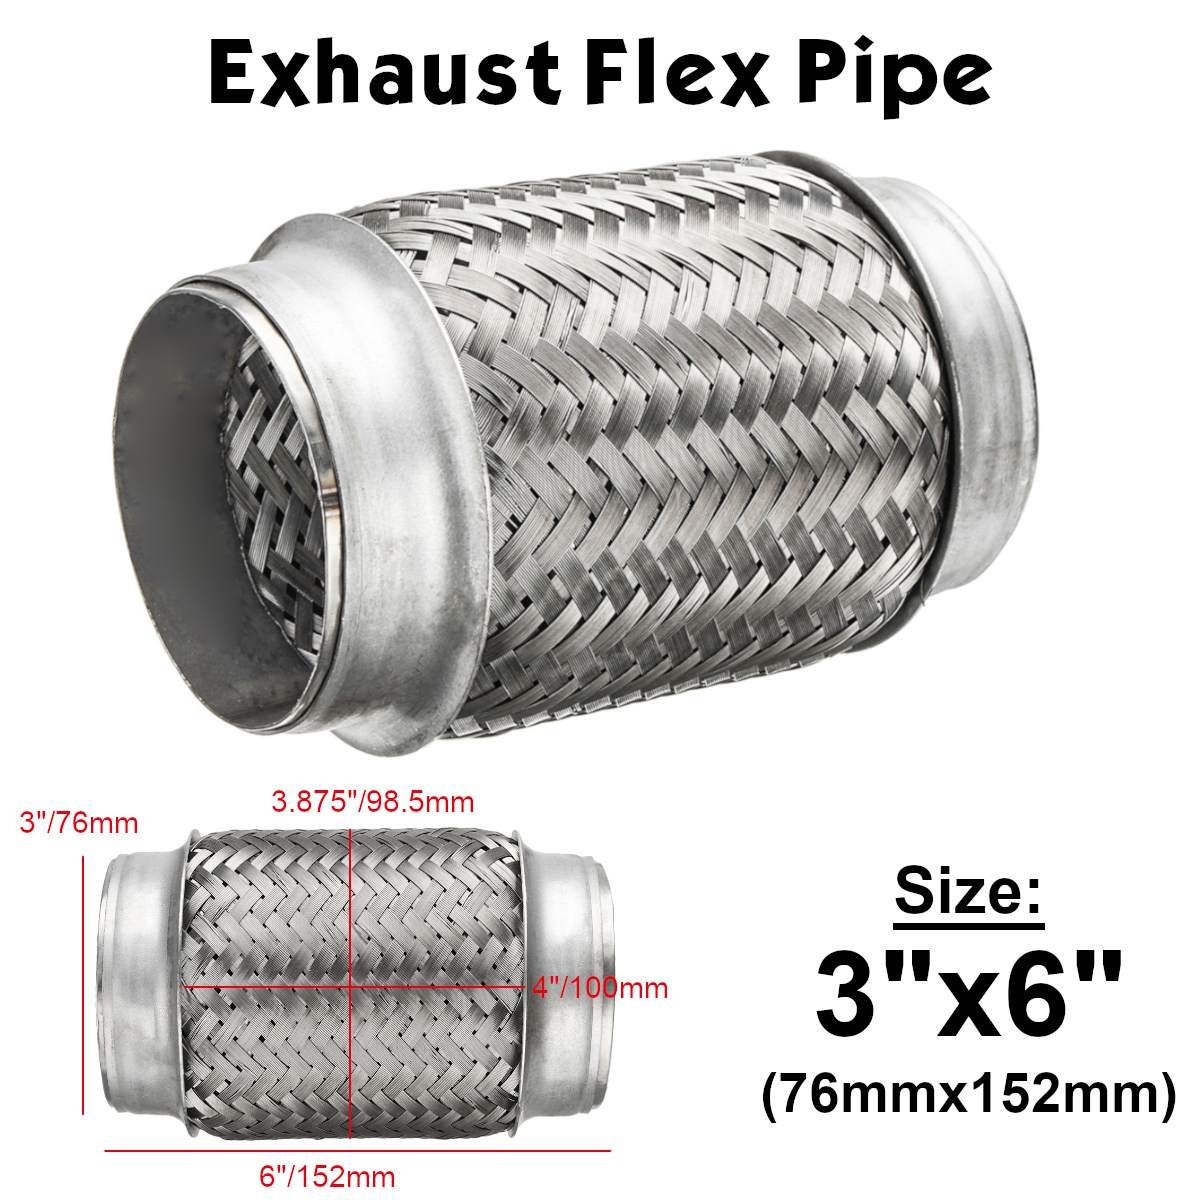 Stainless Steel Exhaust Flexible Pipe 50mm x 100mm Flexi Connector Flexipipe